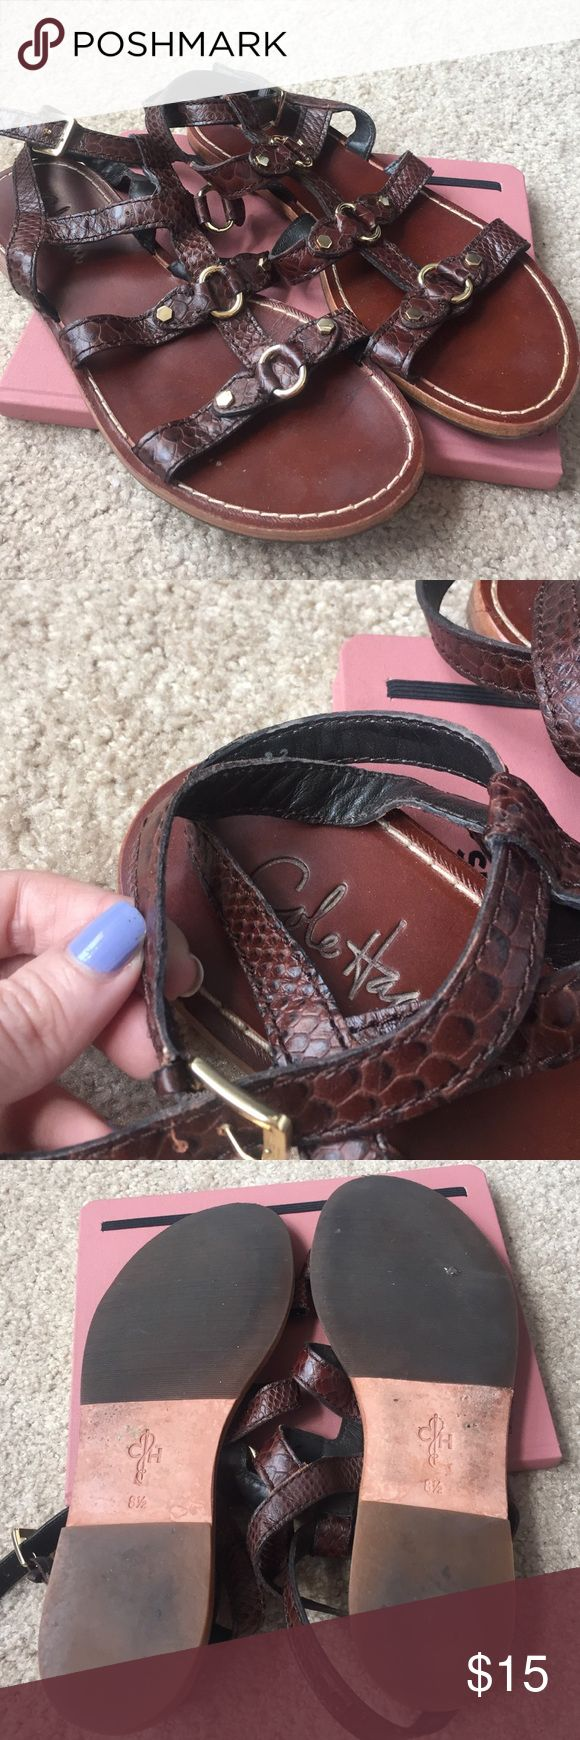 Cole Haan brown gladiator sandals sz 8.5 Cole Haan brown embossed leather gladiator sandals with gold embellishments, size 8.5. Bought them at a Cole Haan outlet a few years ago but decided the gladiator trend wasn't really for me. Barely worn! Cole Haan Shoes Sandals